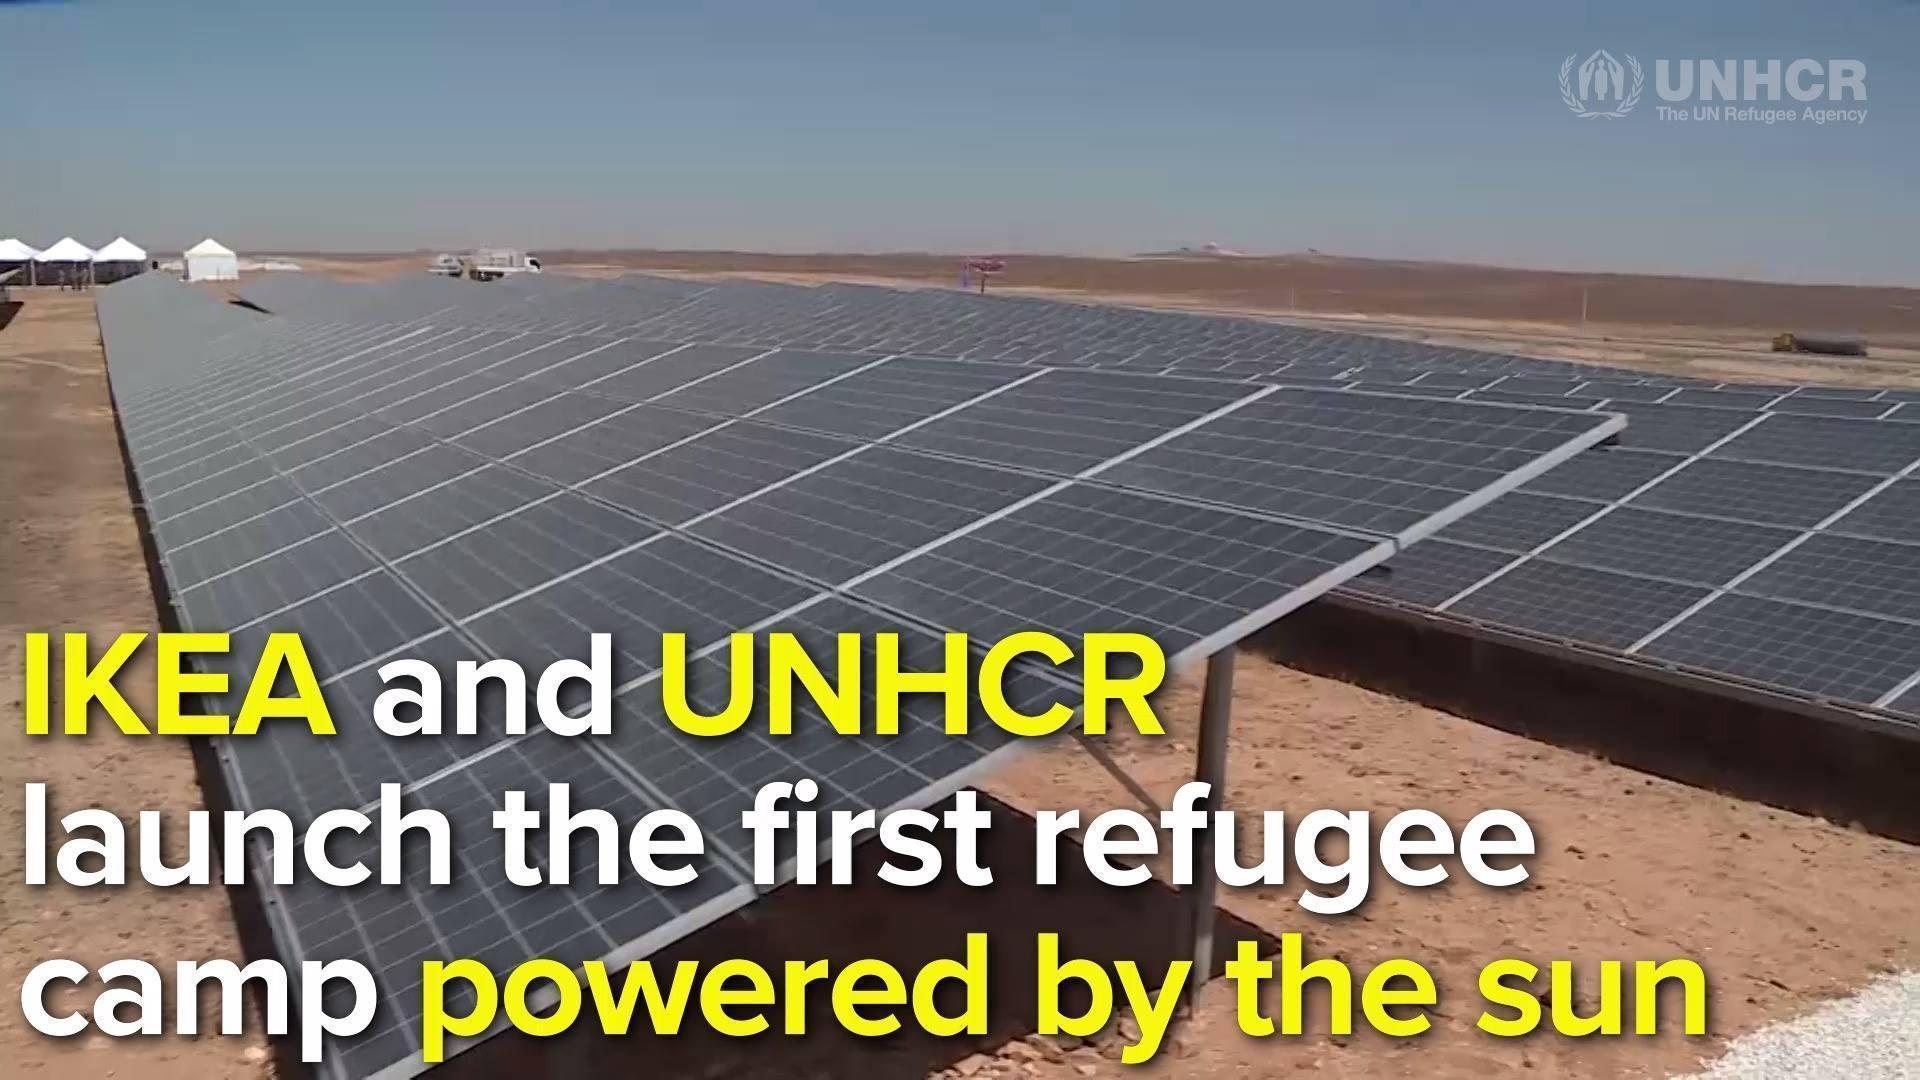 photo image World's First Refugee Camp Powered by Solar